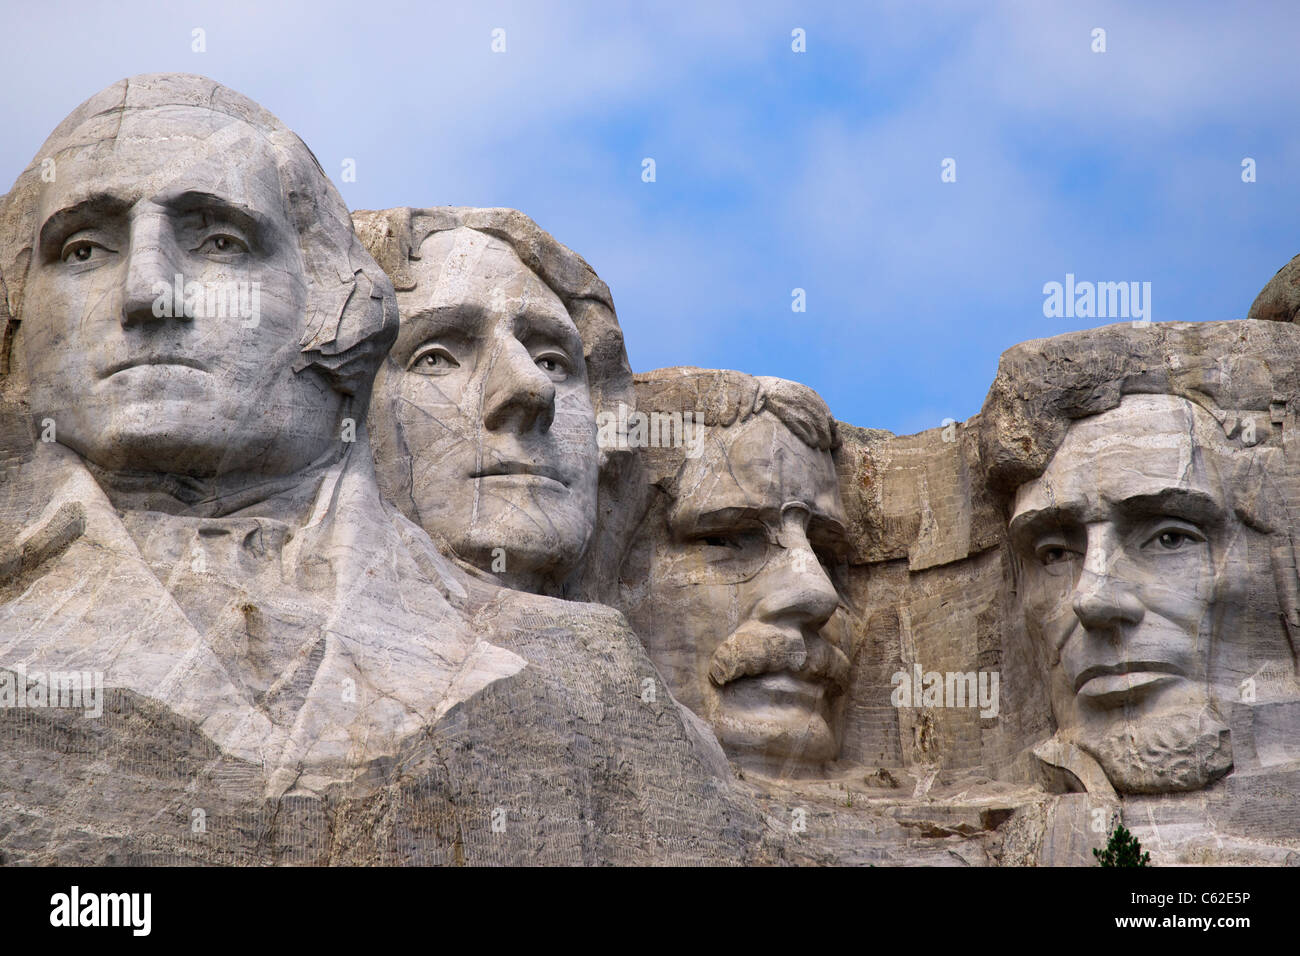 Heads of four american presidents carved in mount rushmore